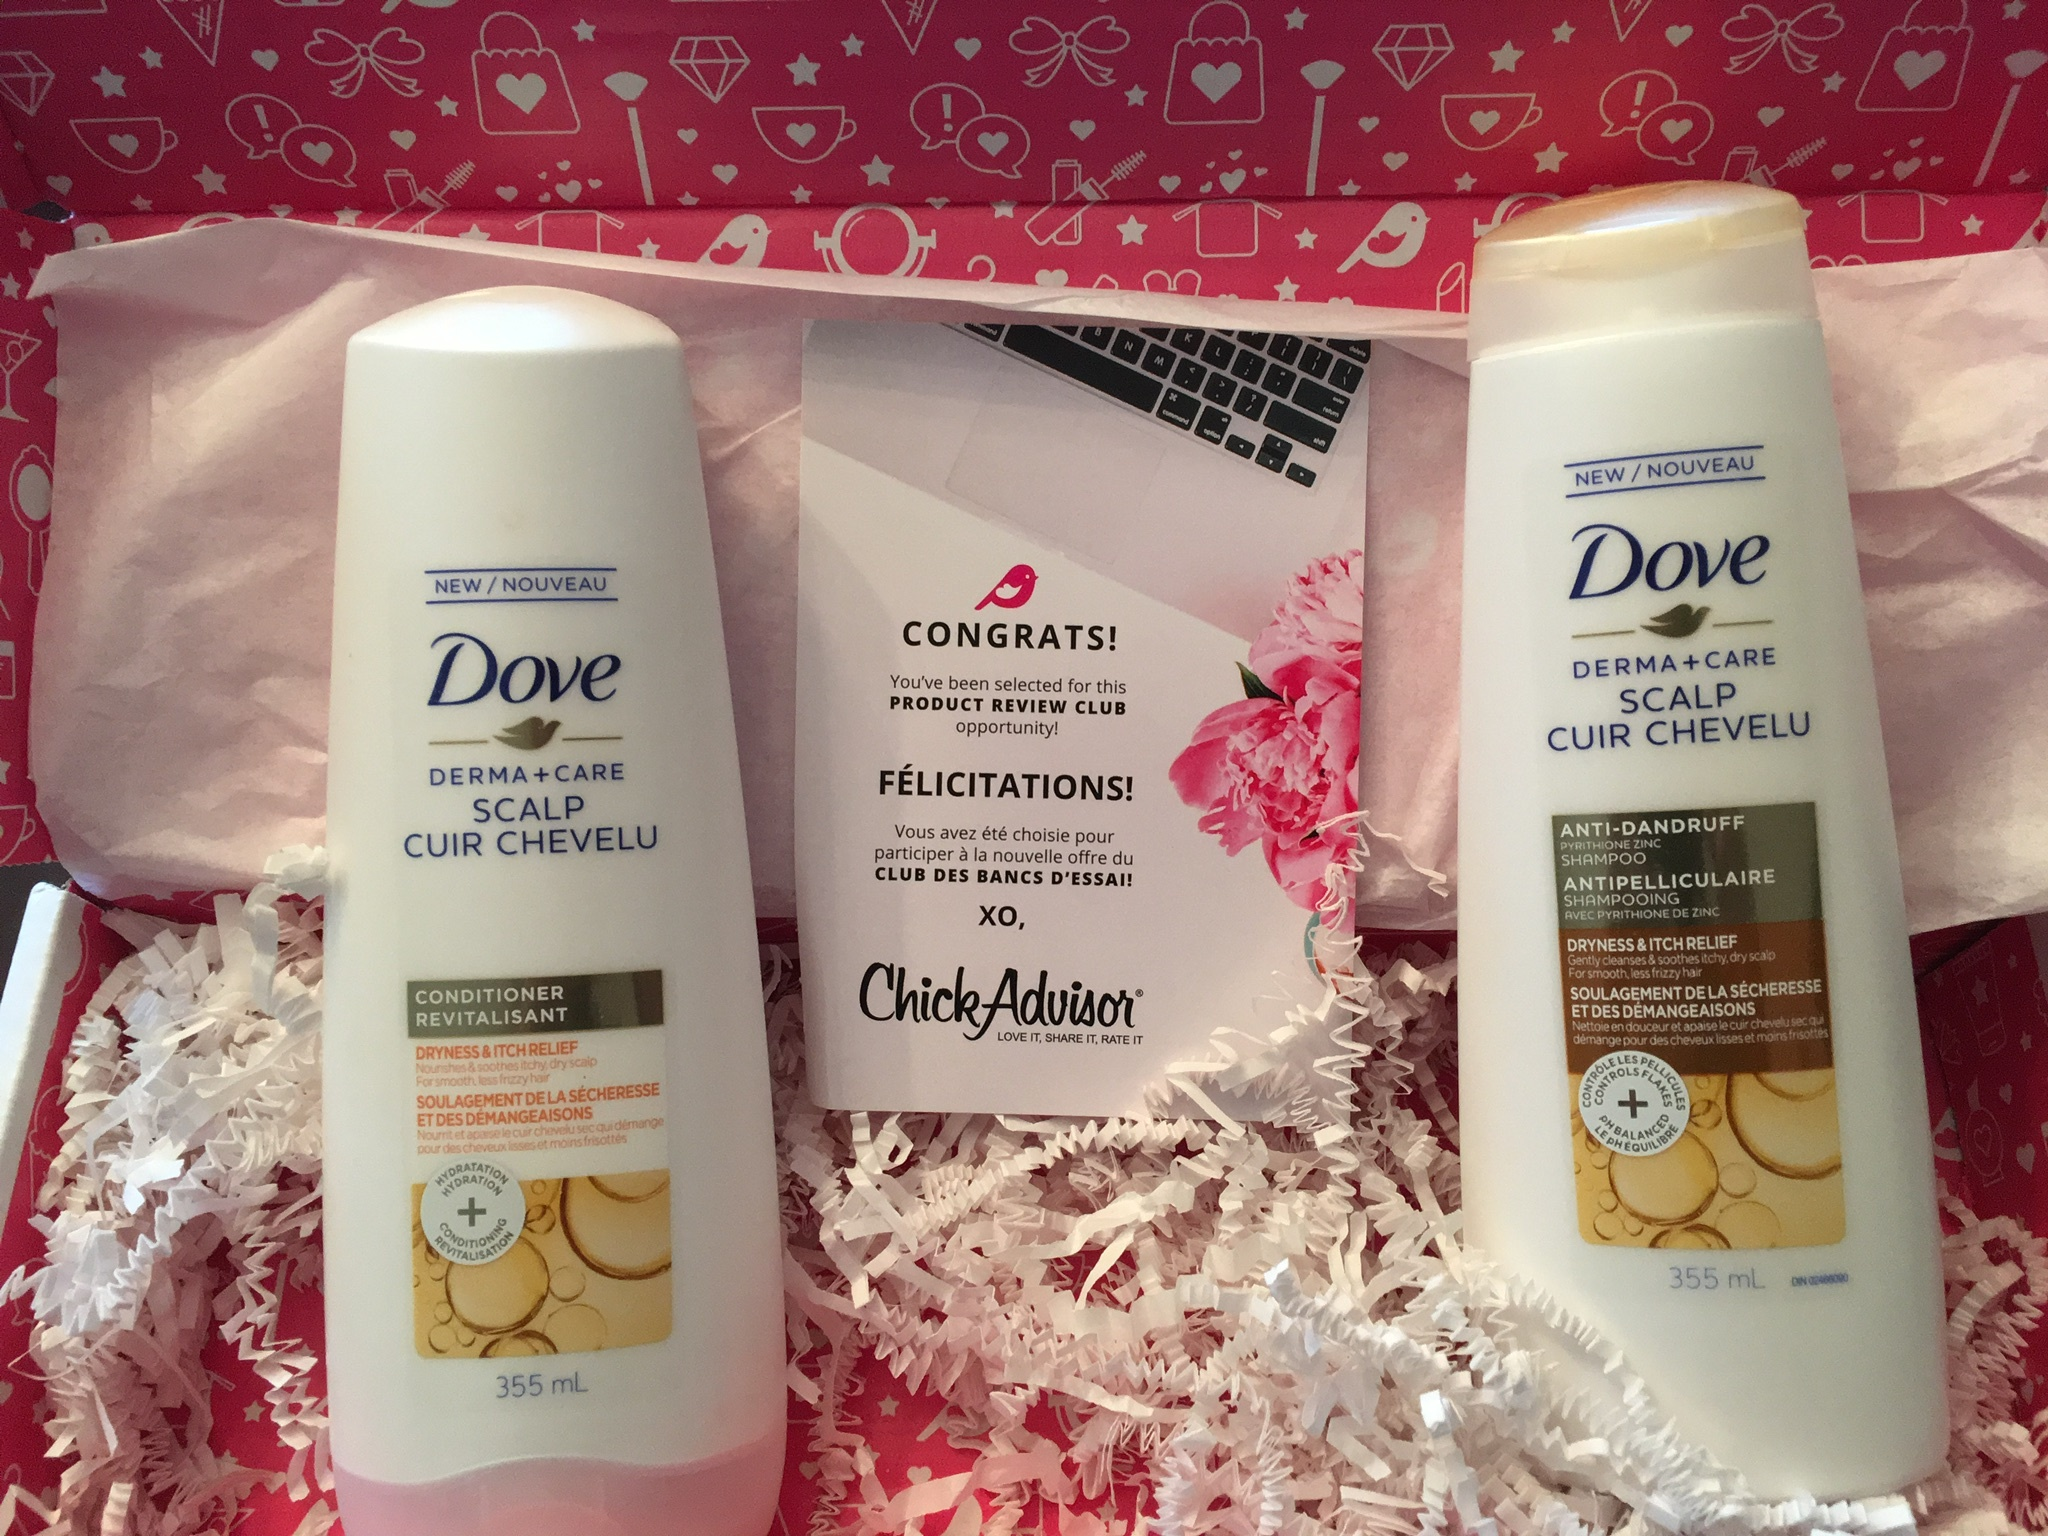 Dove Derma Care Scalp Dryness Amp Itch Relief Anti Dandruff